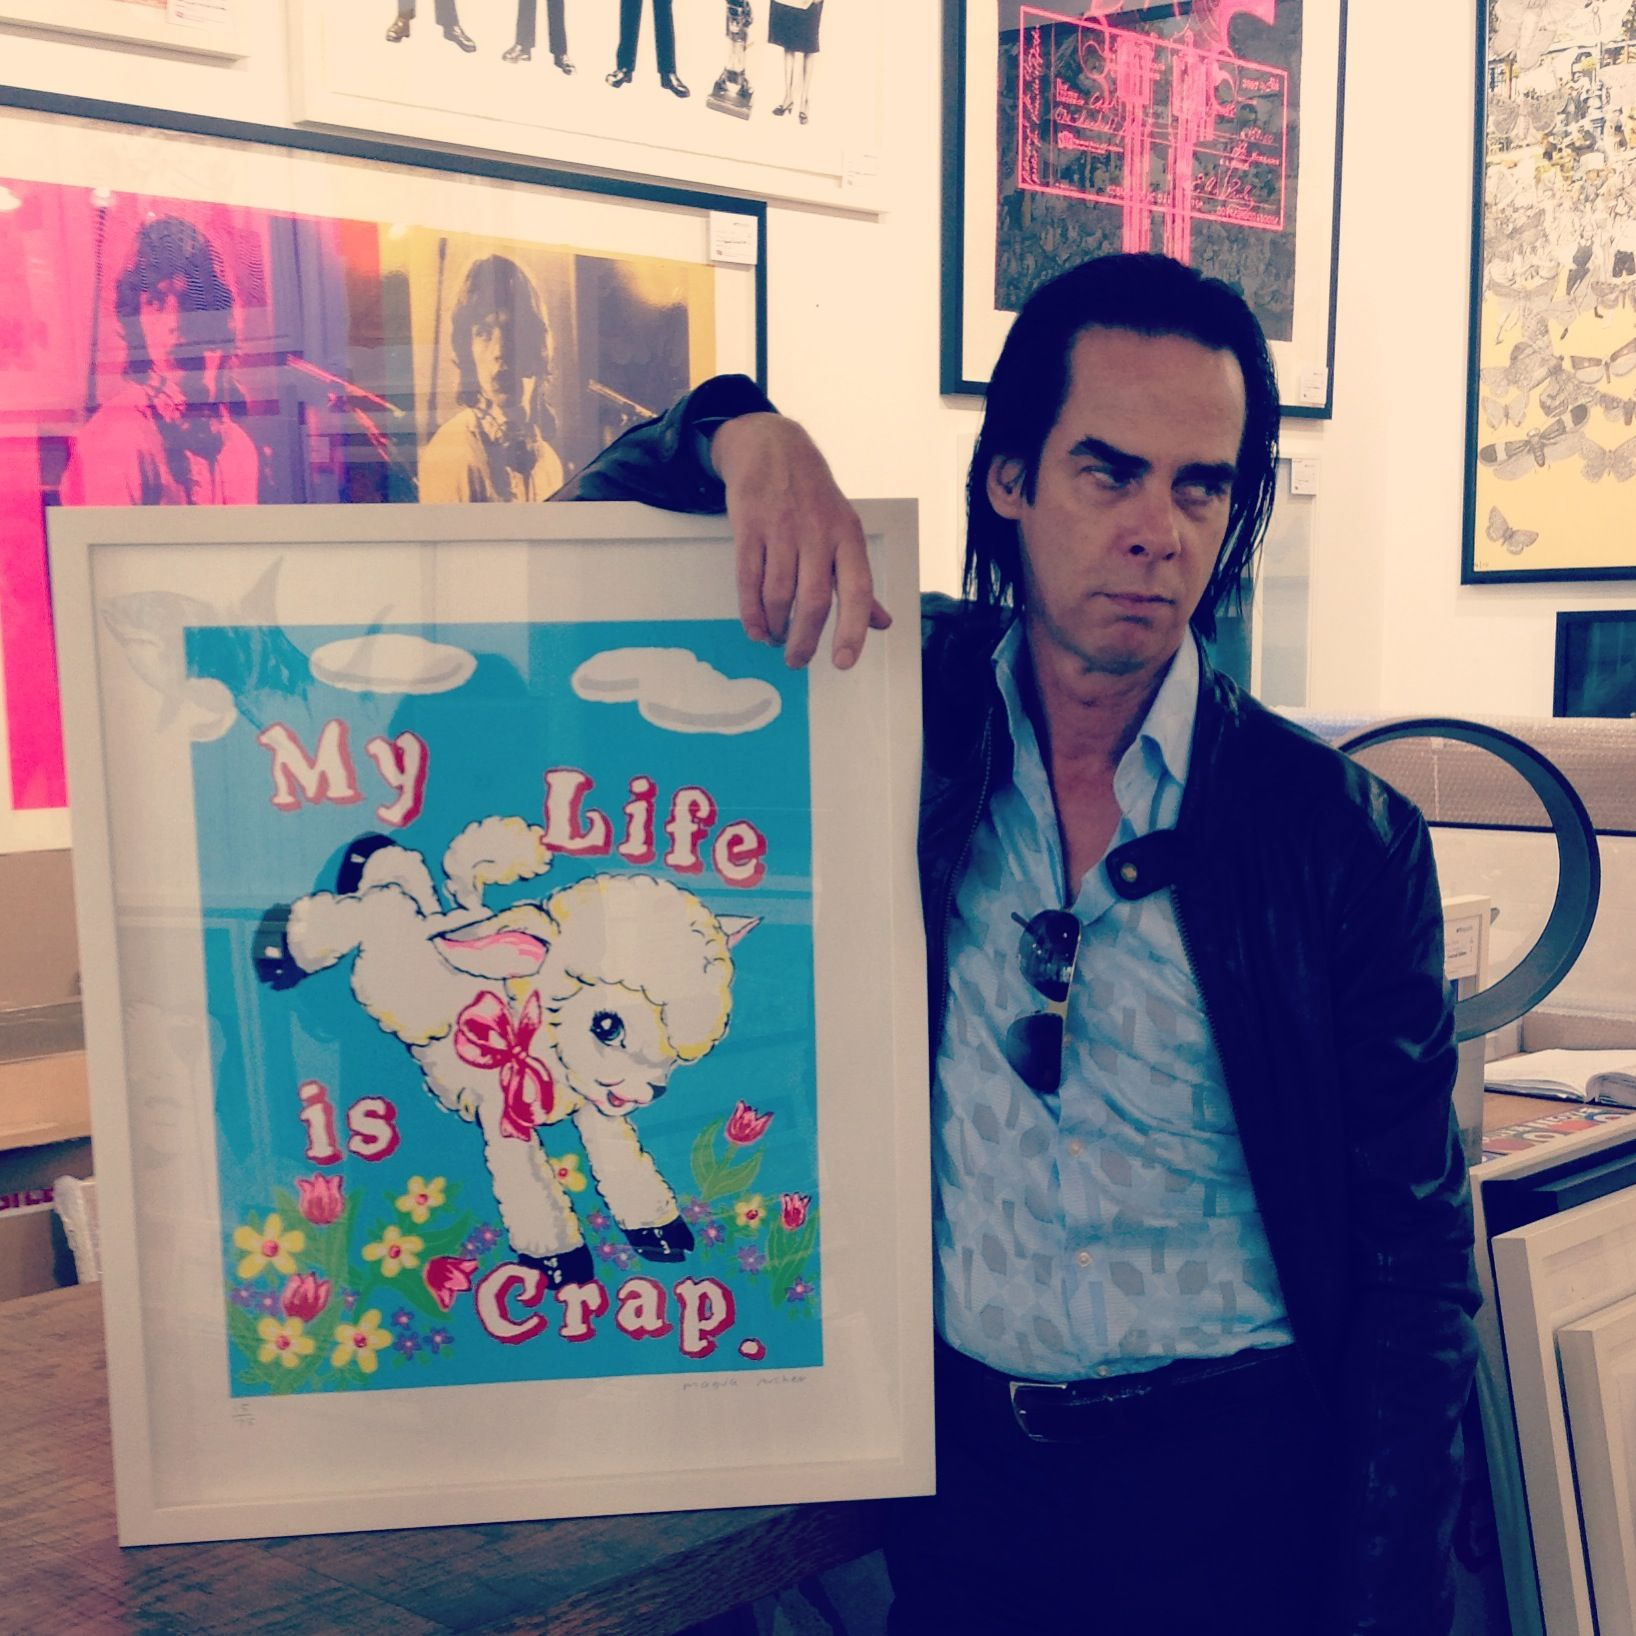 Nick Cave & 'My Life is Crap' print